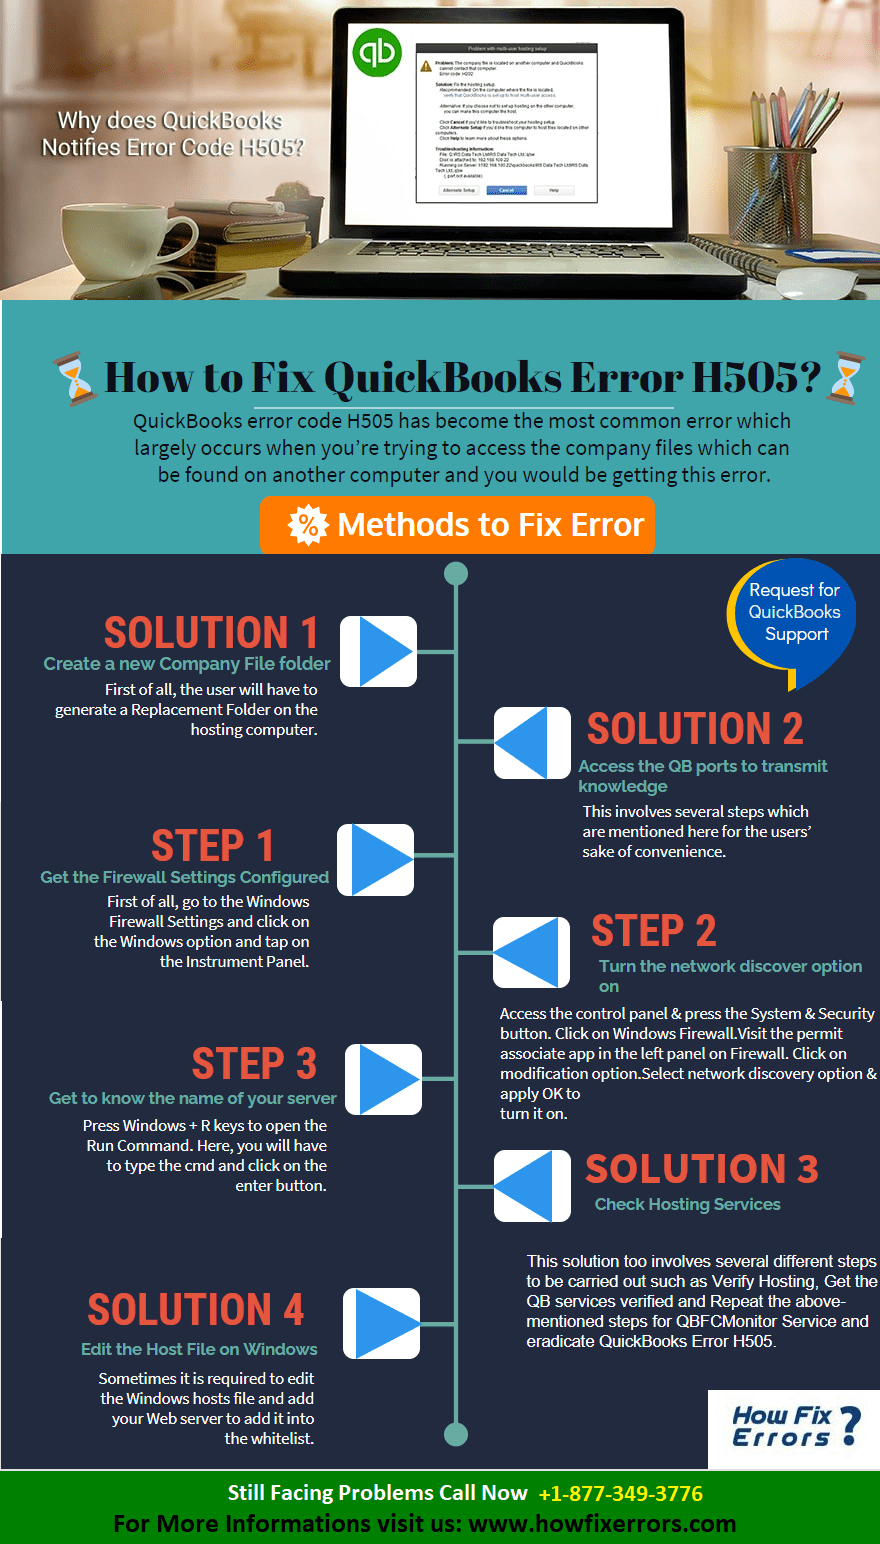 QuickBooks Error H505 (Infographic)